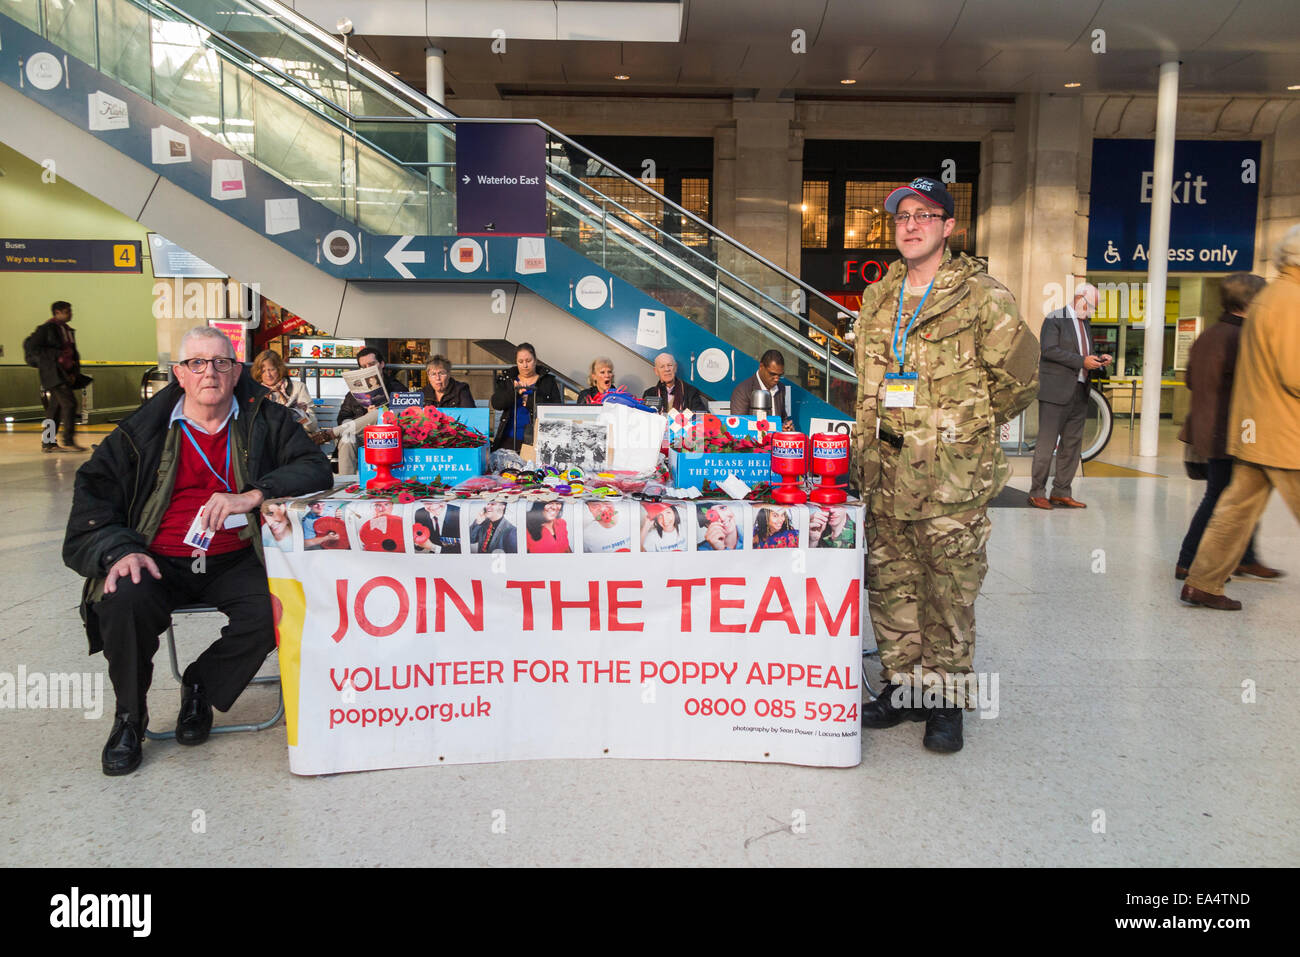 Volunteers selling poppies for the Poppy Appeal for Remembrance Day at a stall in Waterloo Station concourse, London Stock Photo